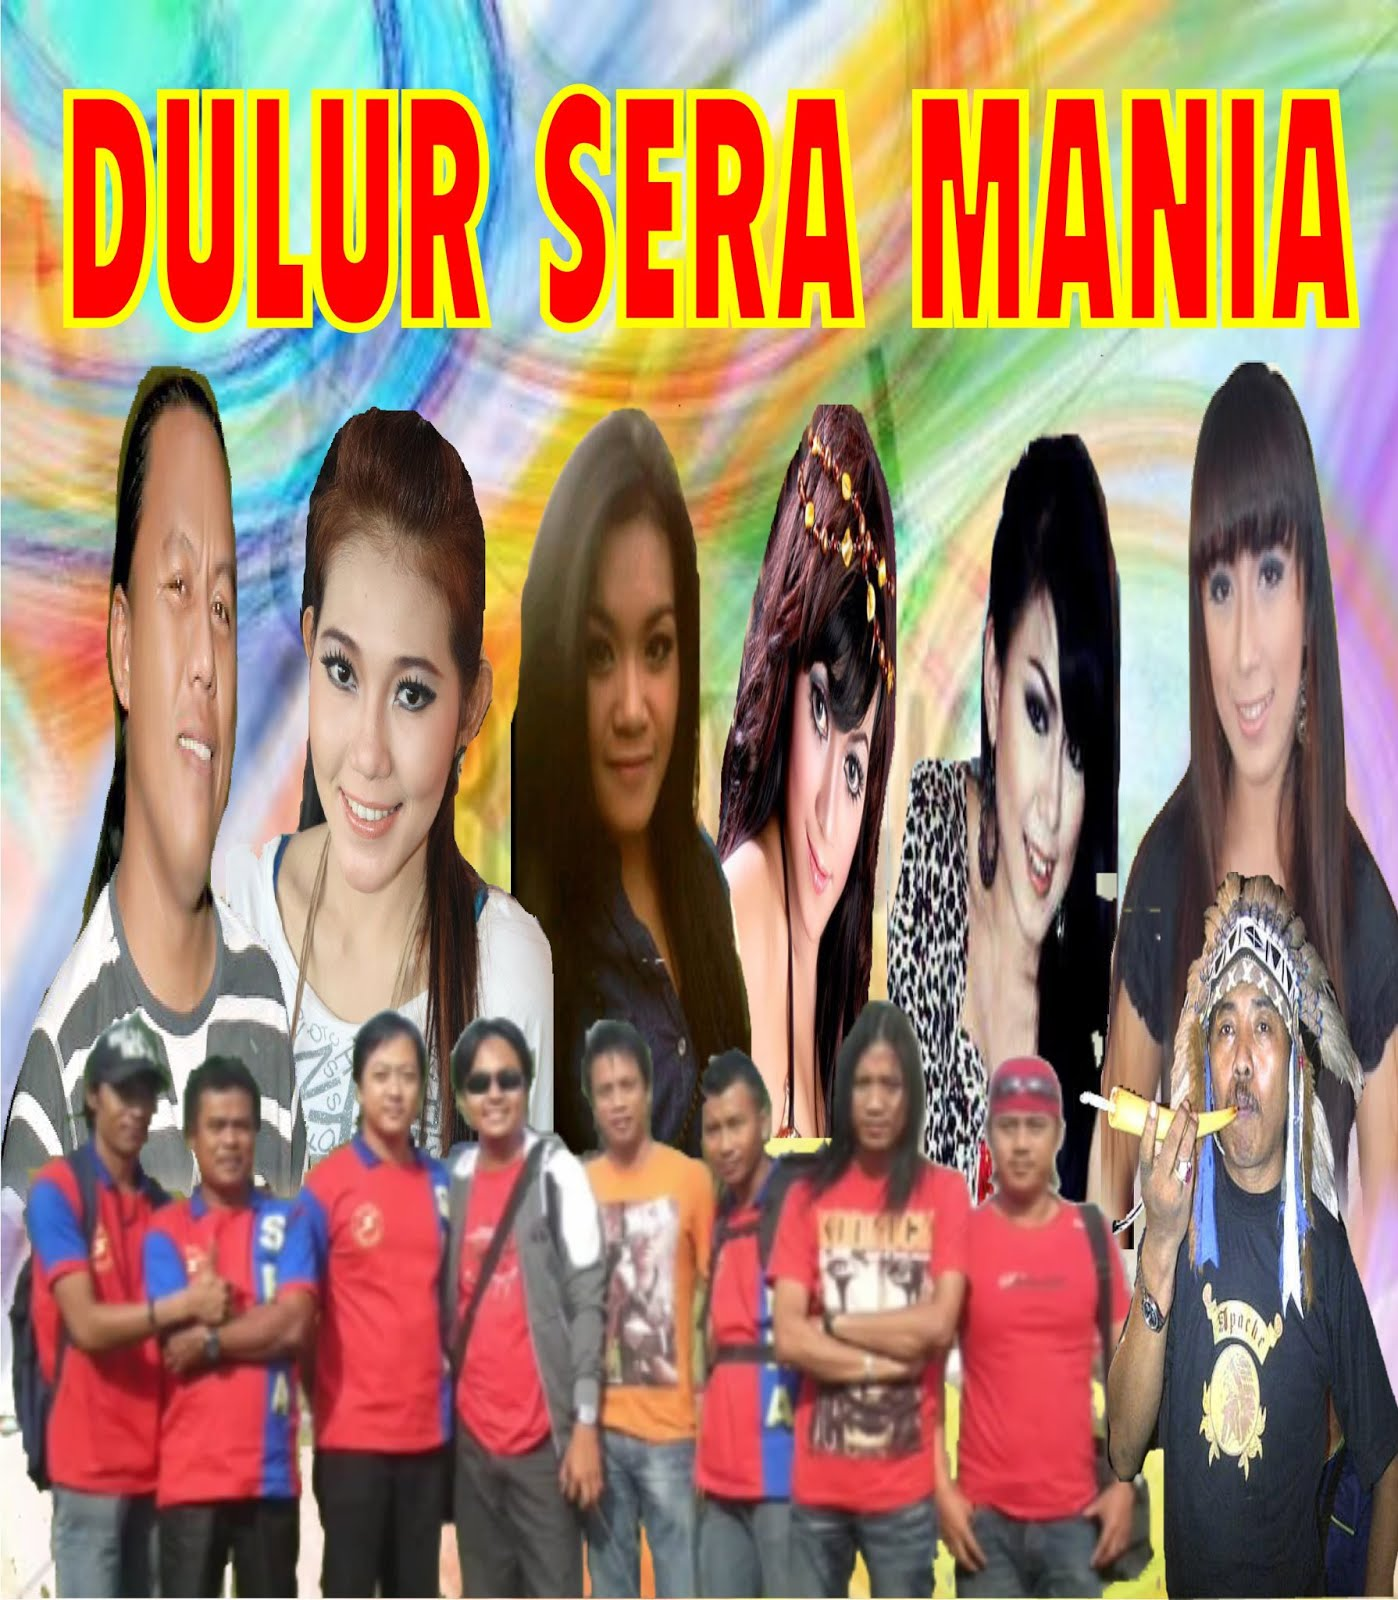 Via Sera Meraih Bintang Mp3: Dangdut Koplo OM Sera Terbaru Desember 2012.Mp3 Free Download